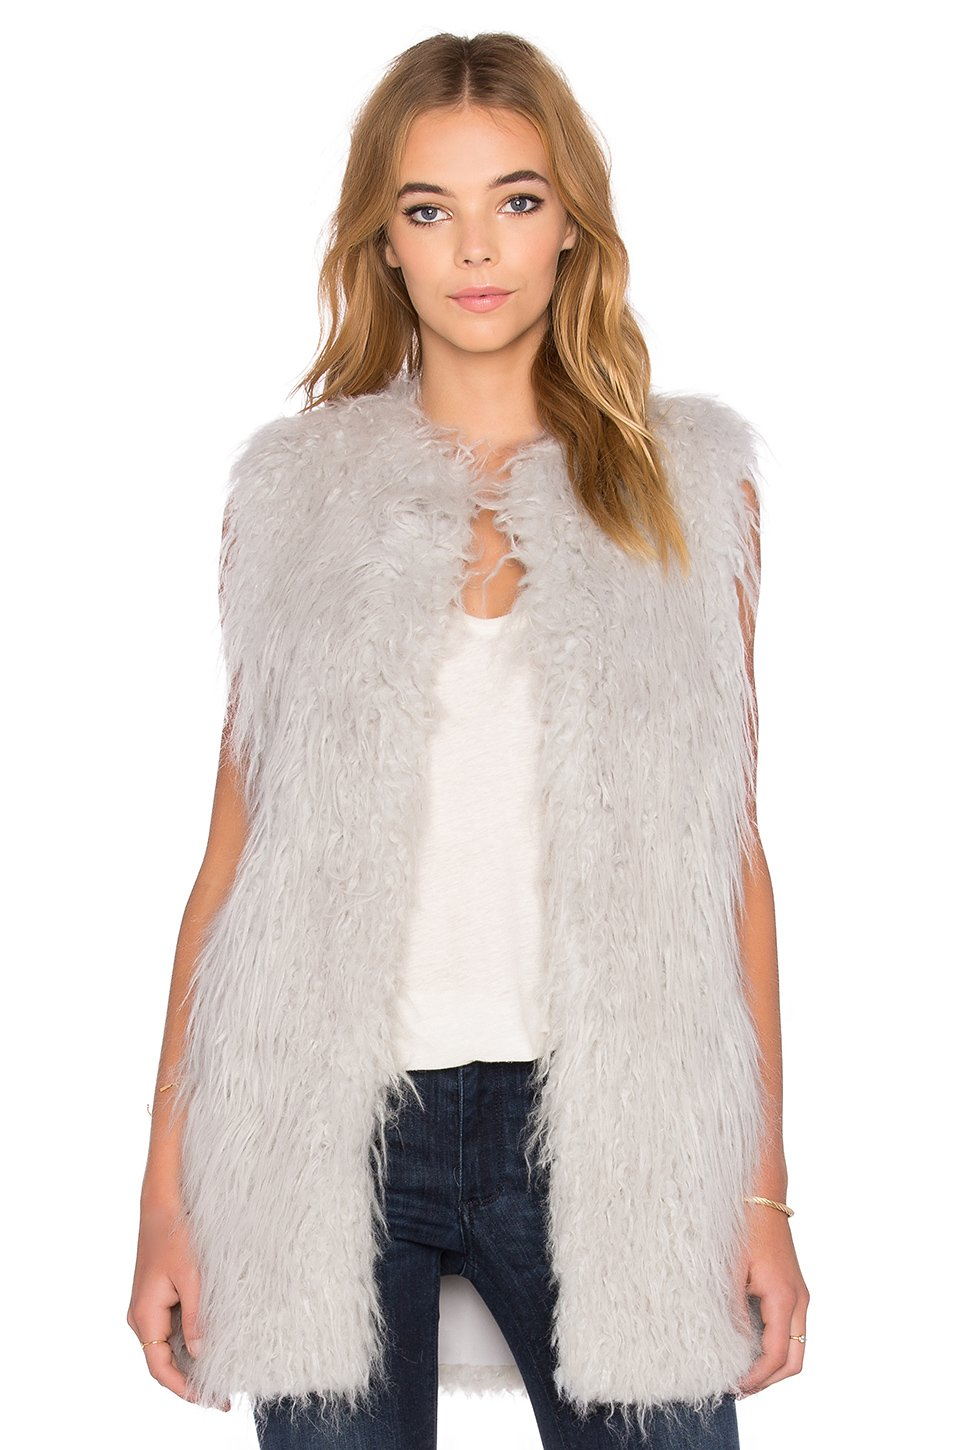 You searched for: long fur vests! Etsy is the home to thousands of handmade, vintage, and one-of-a-kind products and gifts related to your search. No matter what you're looking for or where you are in the world, our global marketplace of sellers can help you find unique and affordable options. Let's get started!